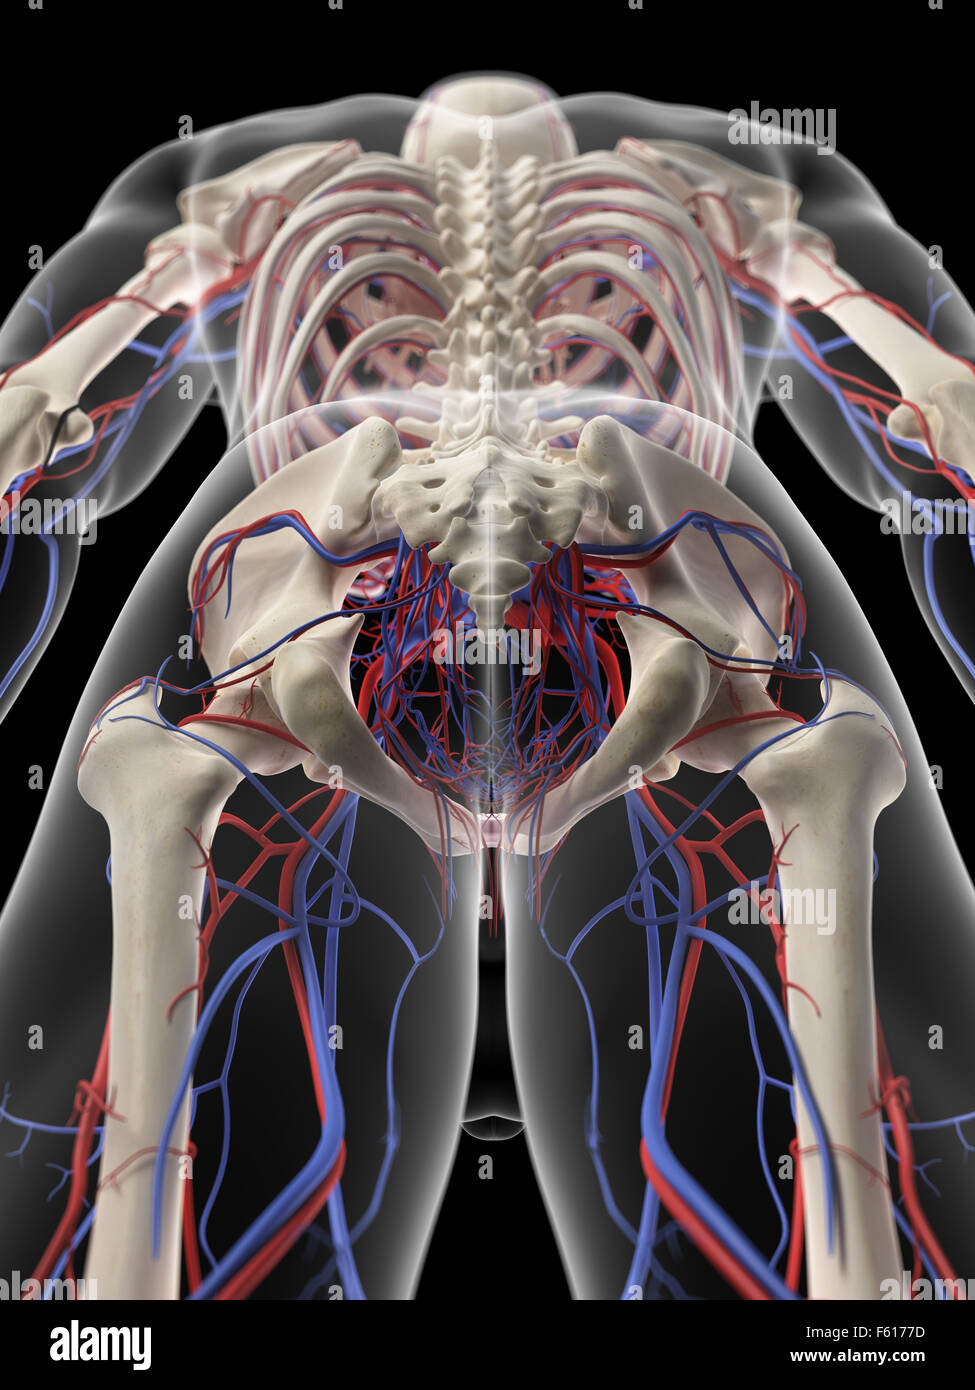 medically accurate illustration of the pelvic circulatory system - Stock Image